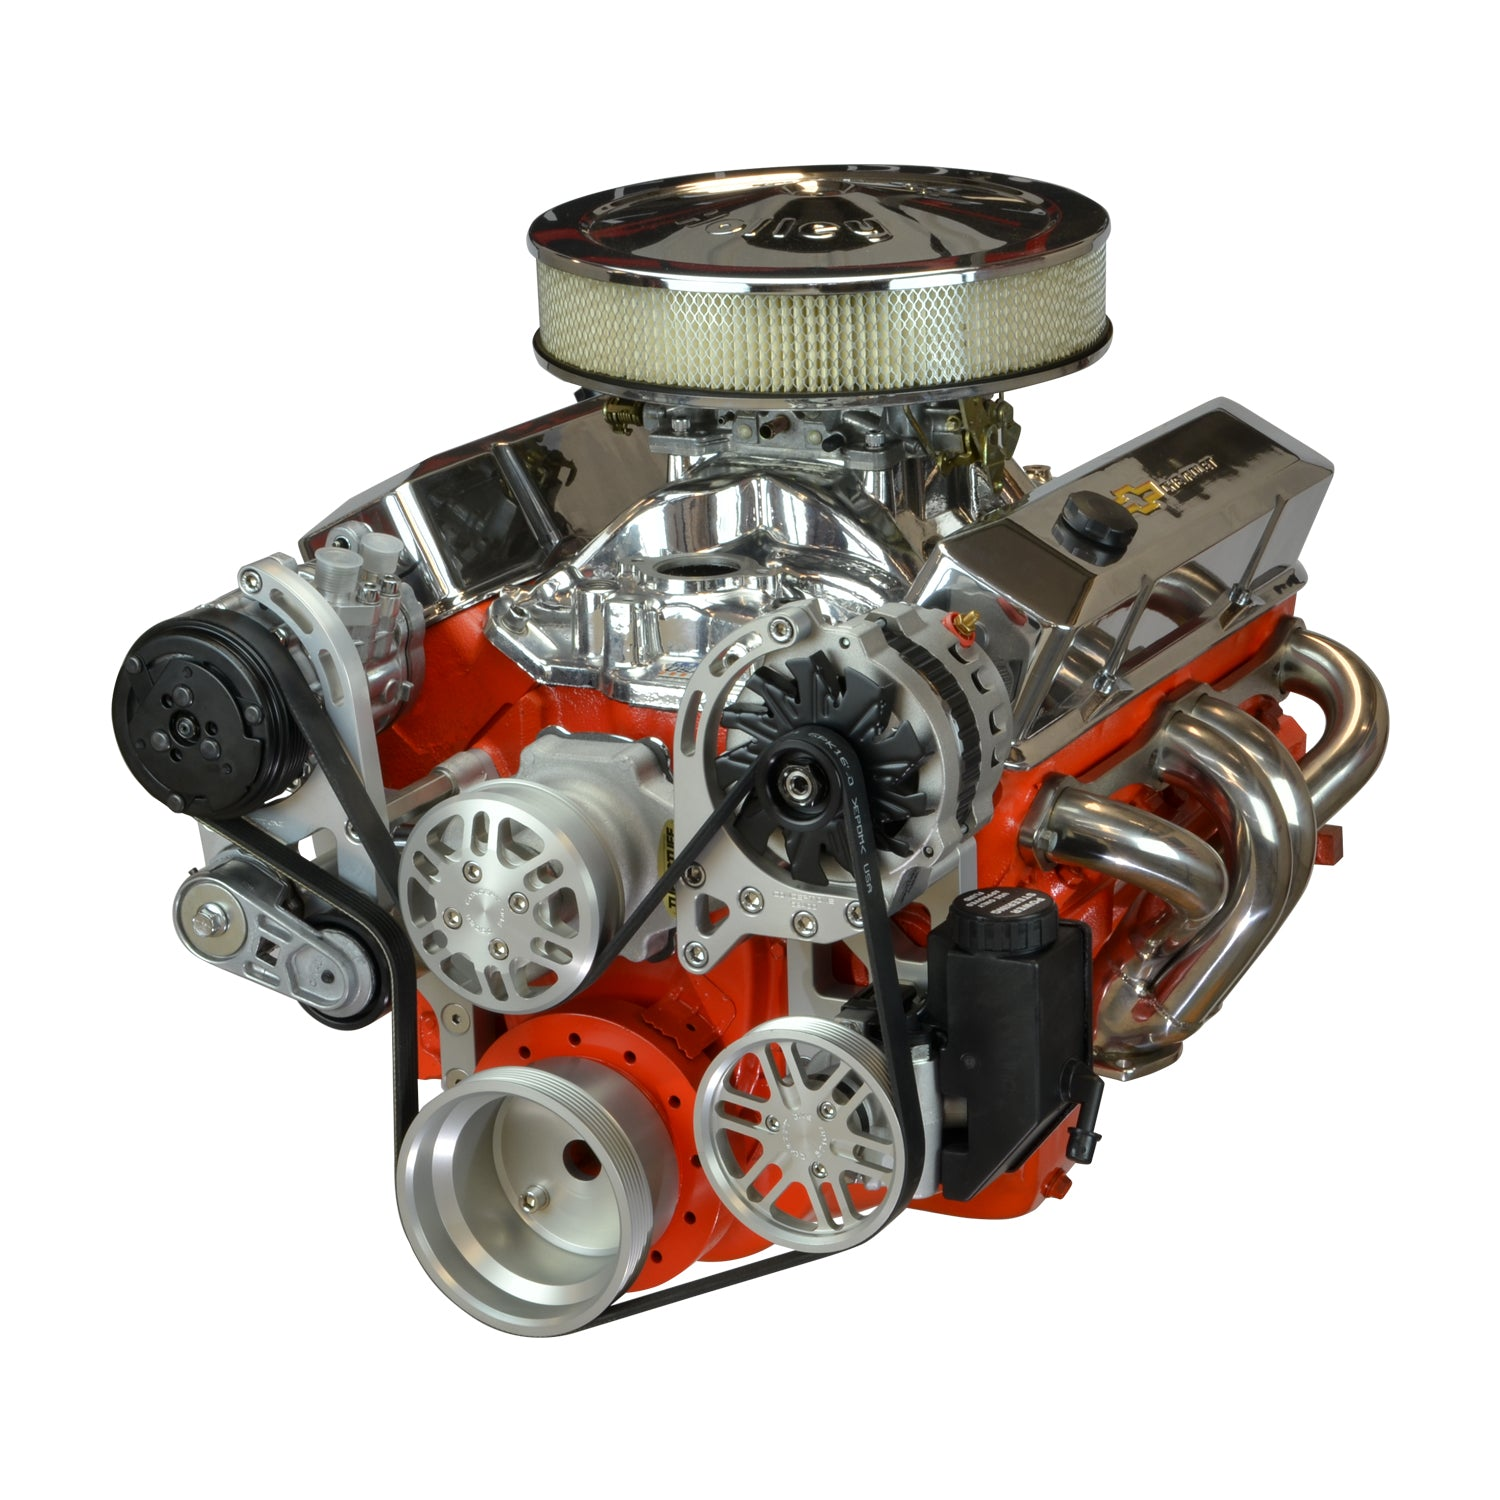 Concept One Pulley Systems: Chevy Small Block Driver Series Kit with Alternator, A/C and Power Steering, front view angle anodized clear